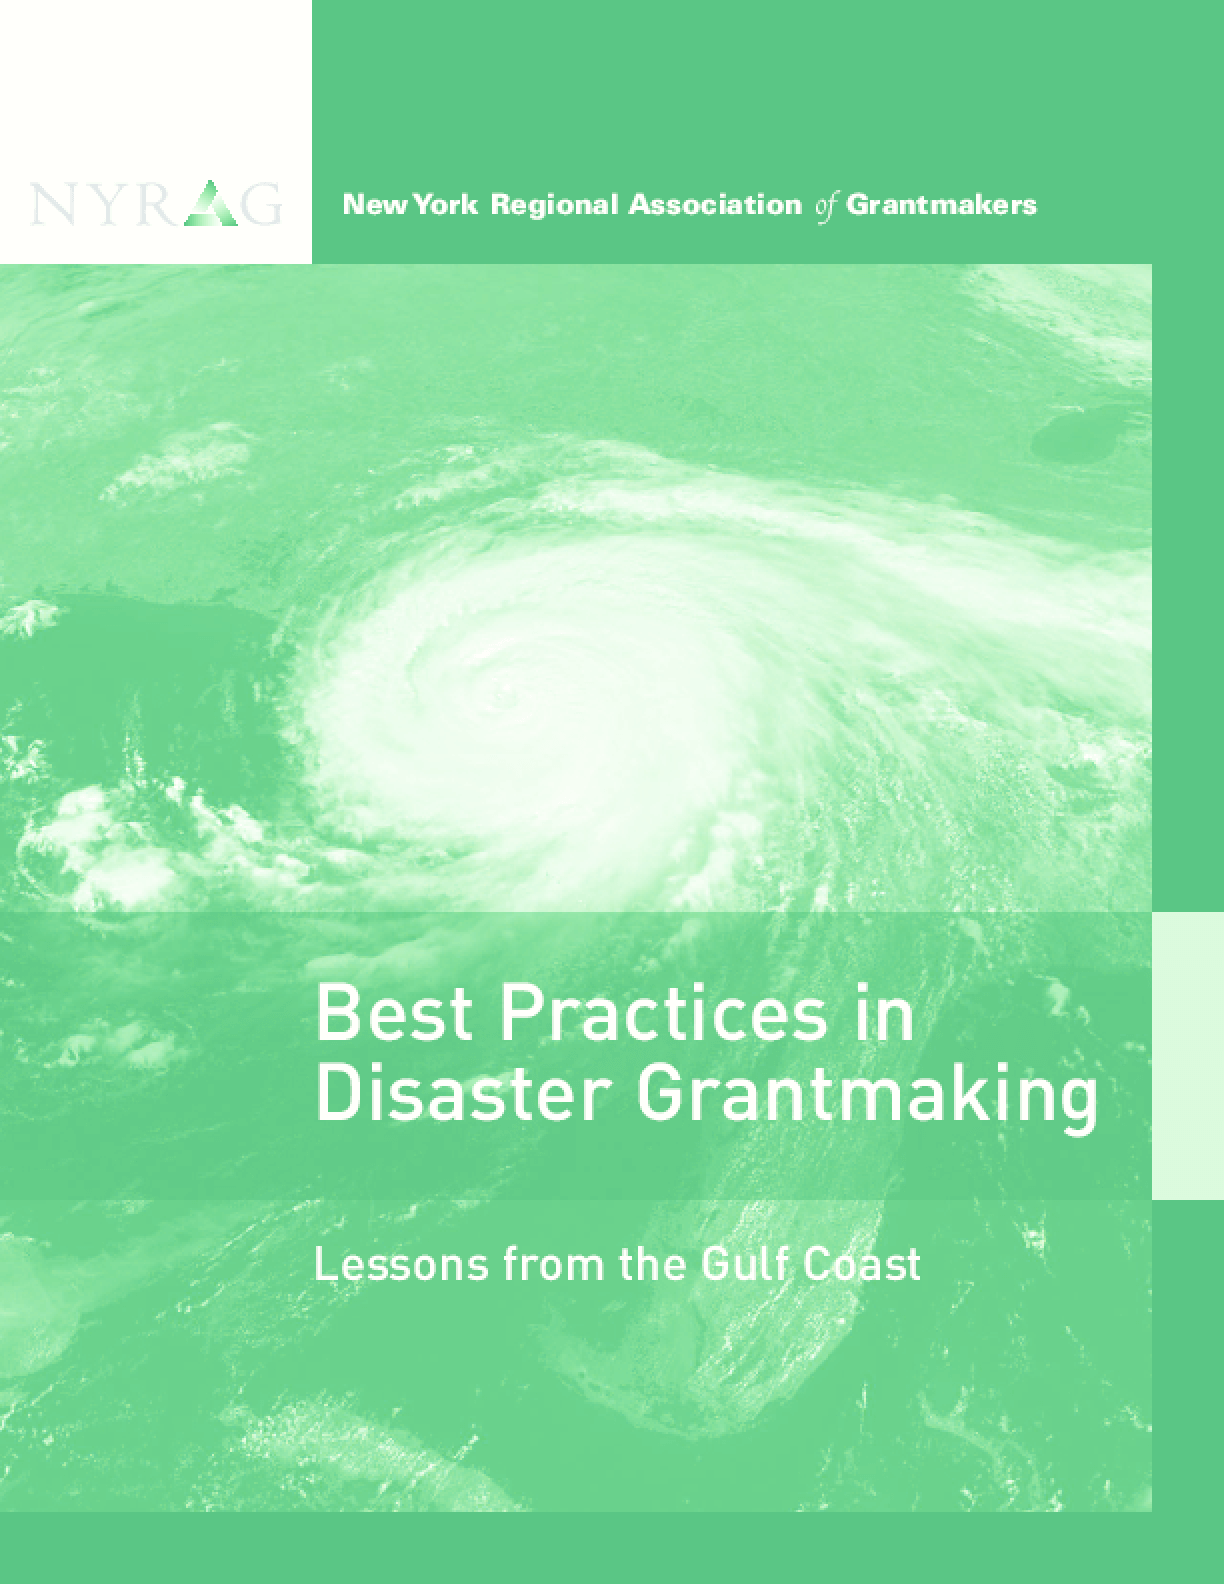 Best Practices in Disaster Grantmaking: Lessons From the Gulf Coast